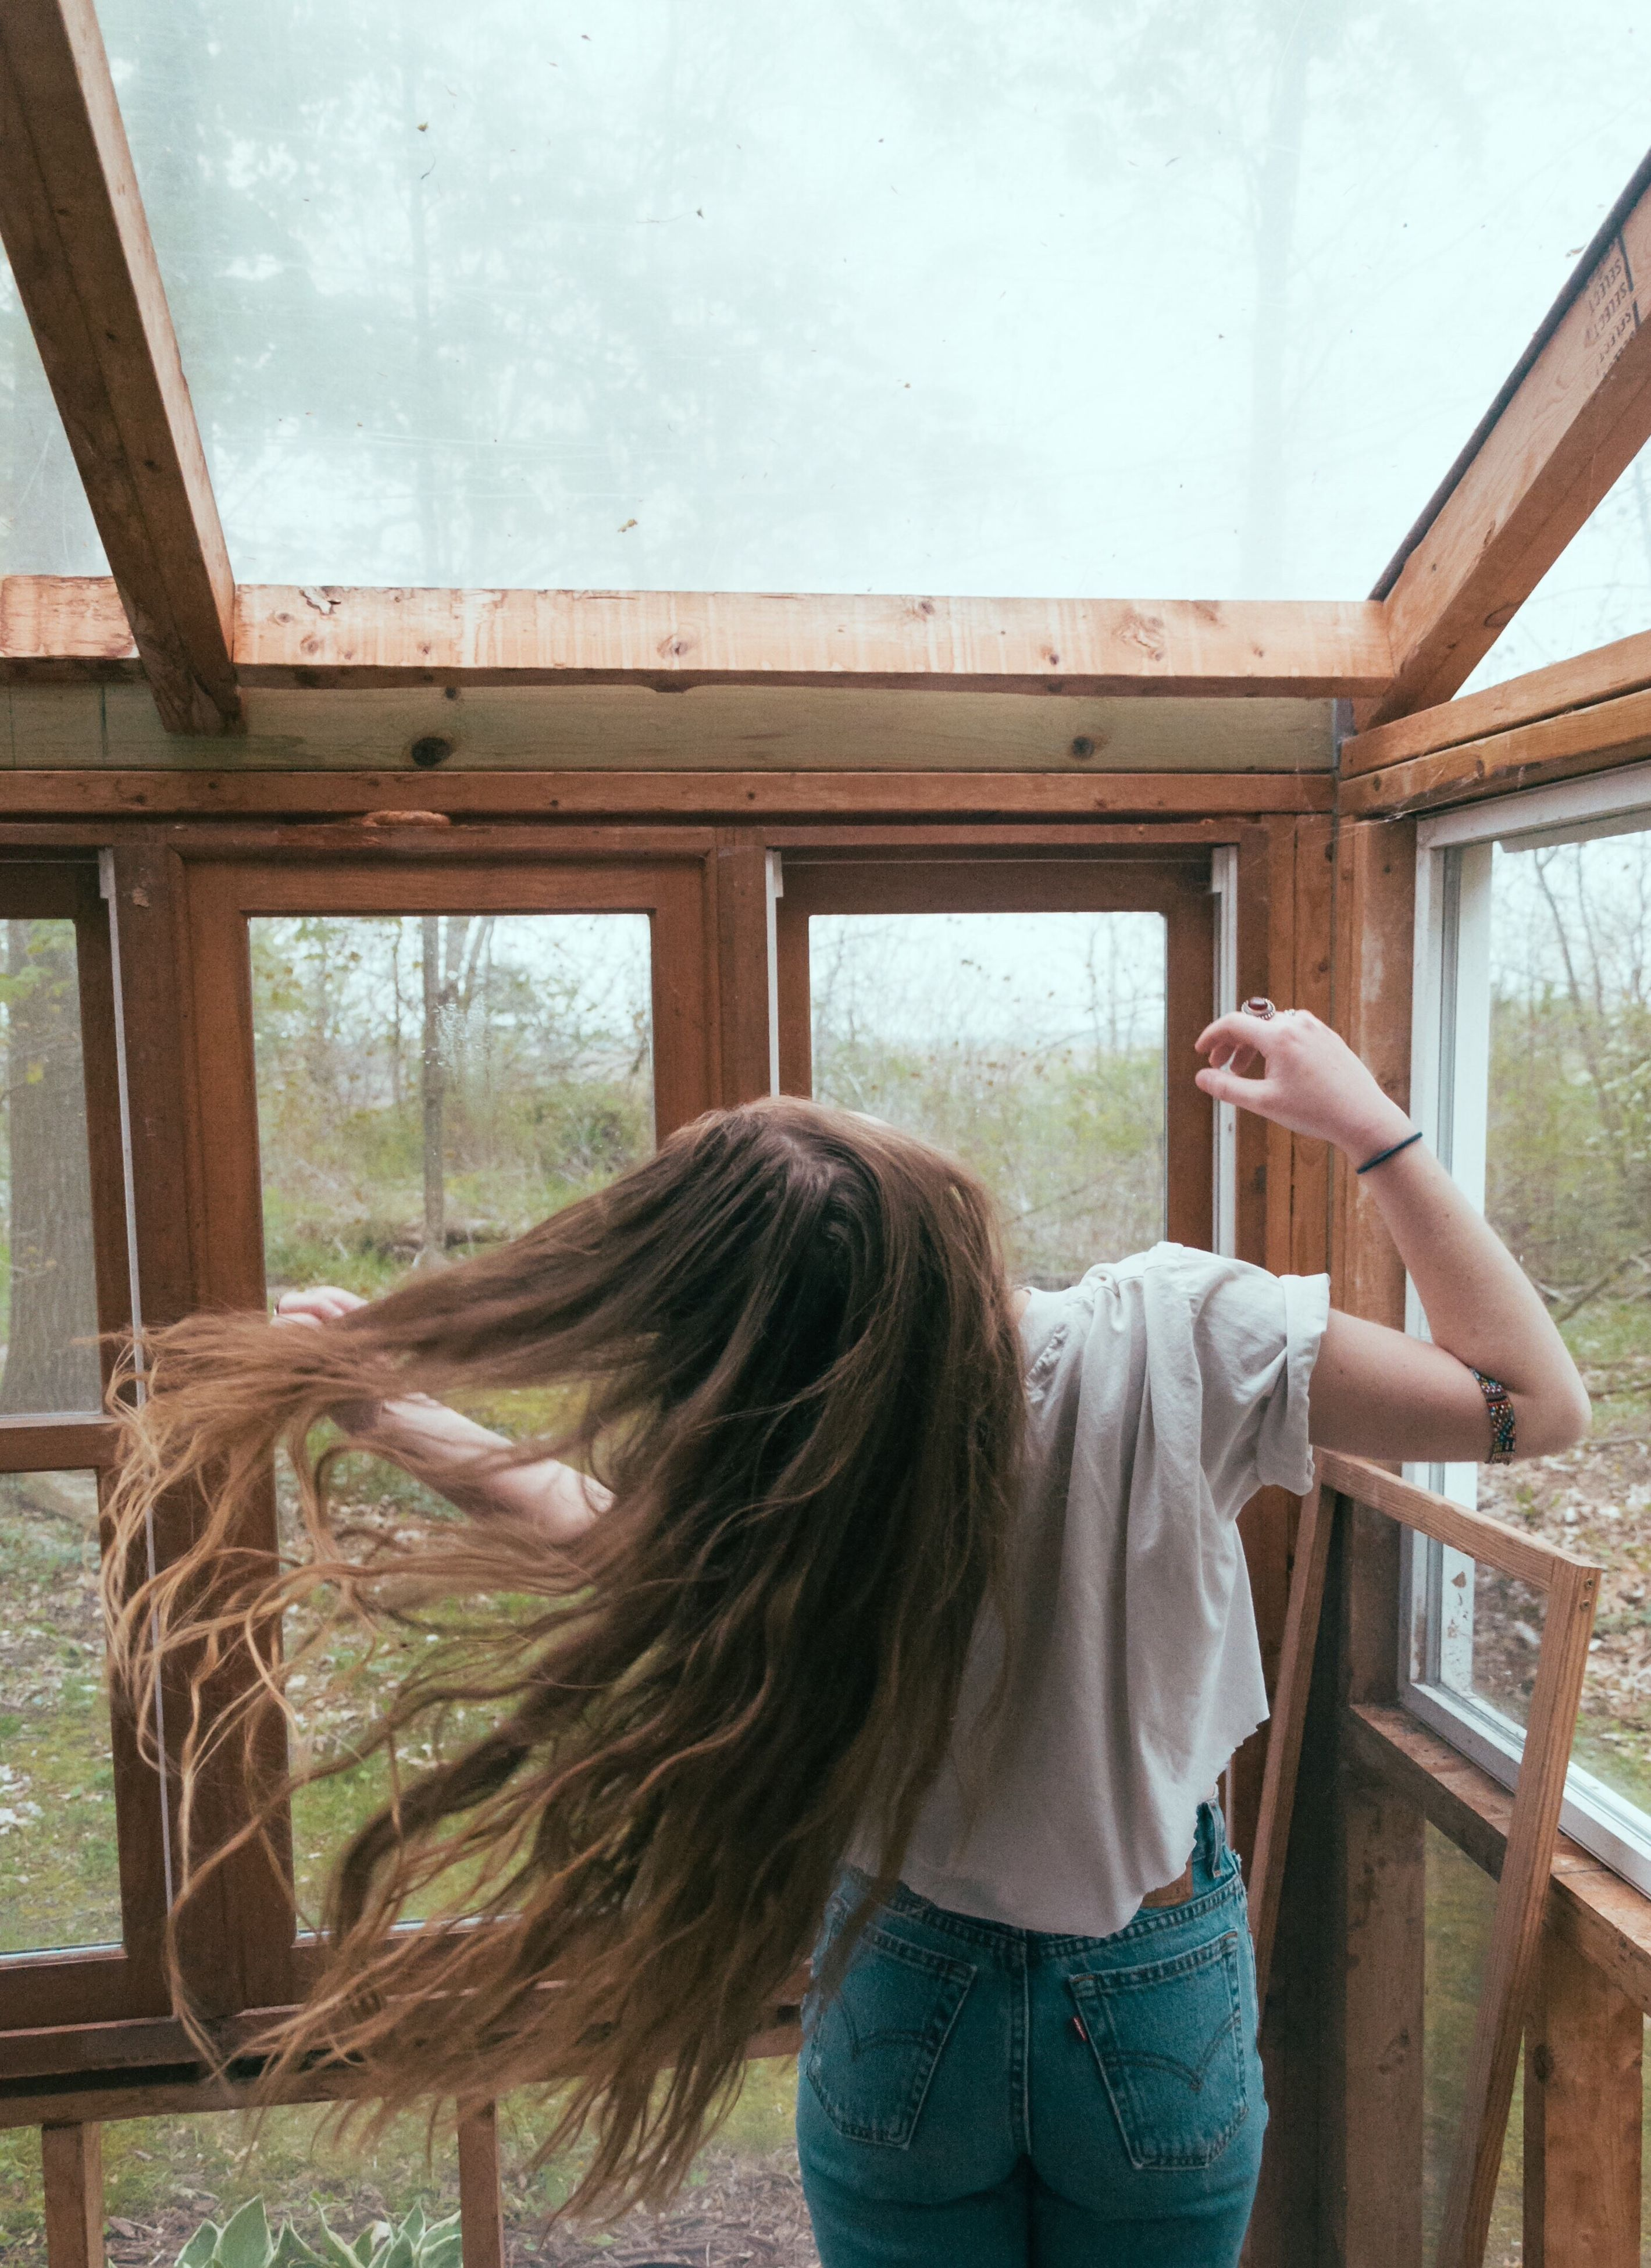 indoors, lifestyles, young adult, window, leisure activity, person, young women, casual clothing, long hair, home interior, relaxation, sitting, rear view, headshot, built structure, waist up, day, house